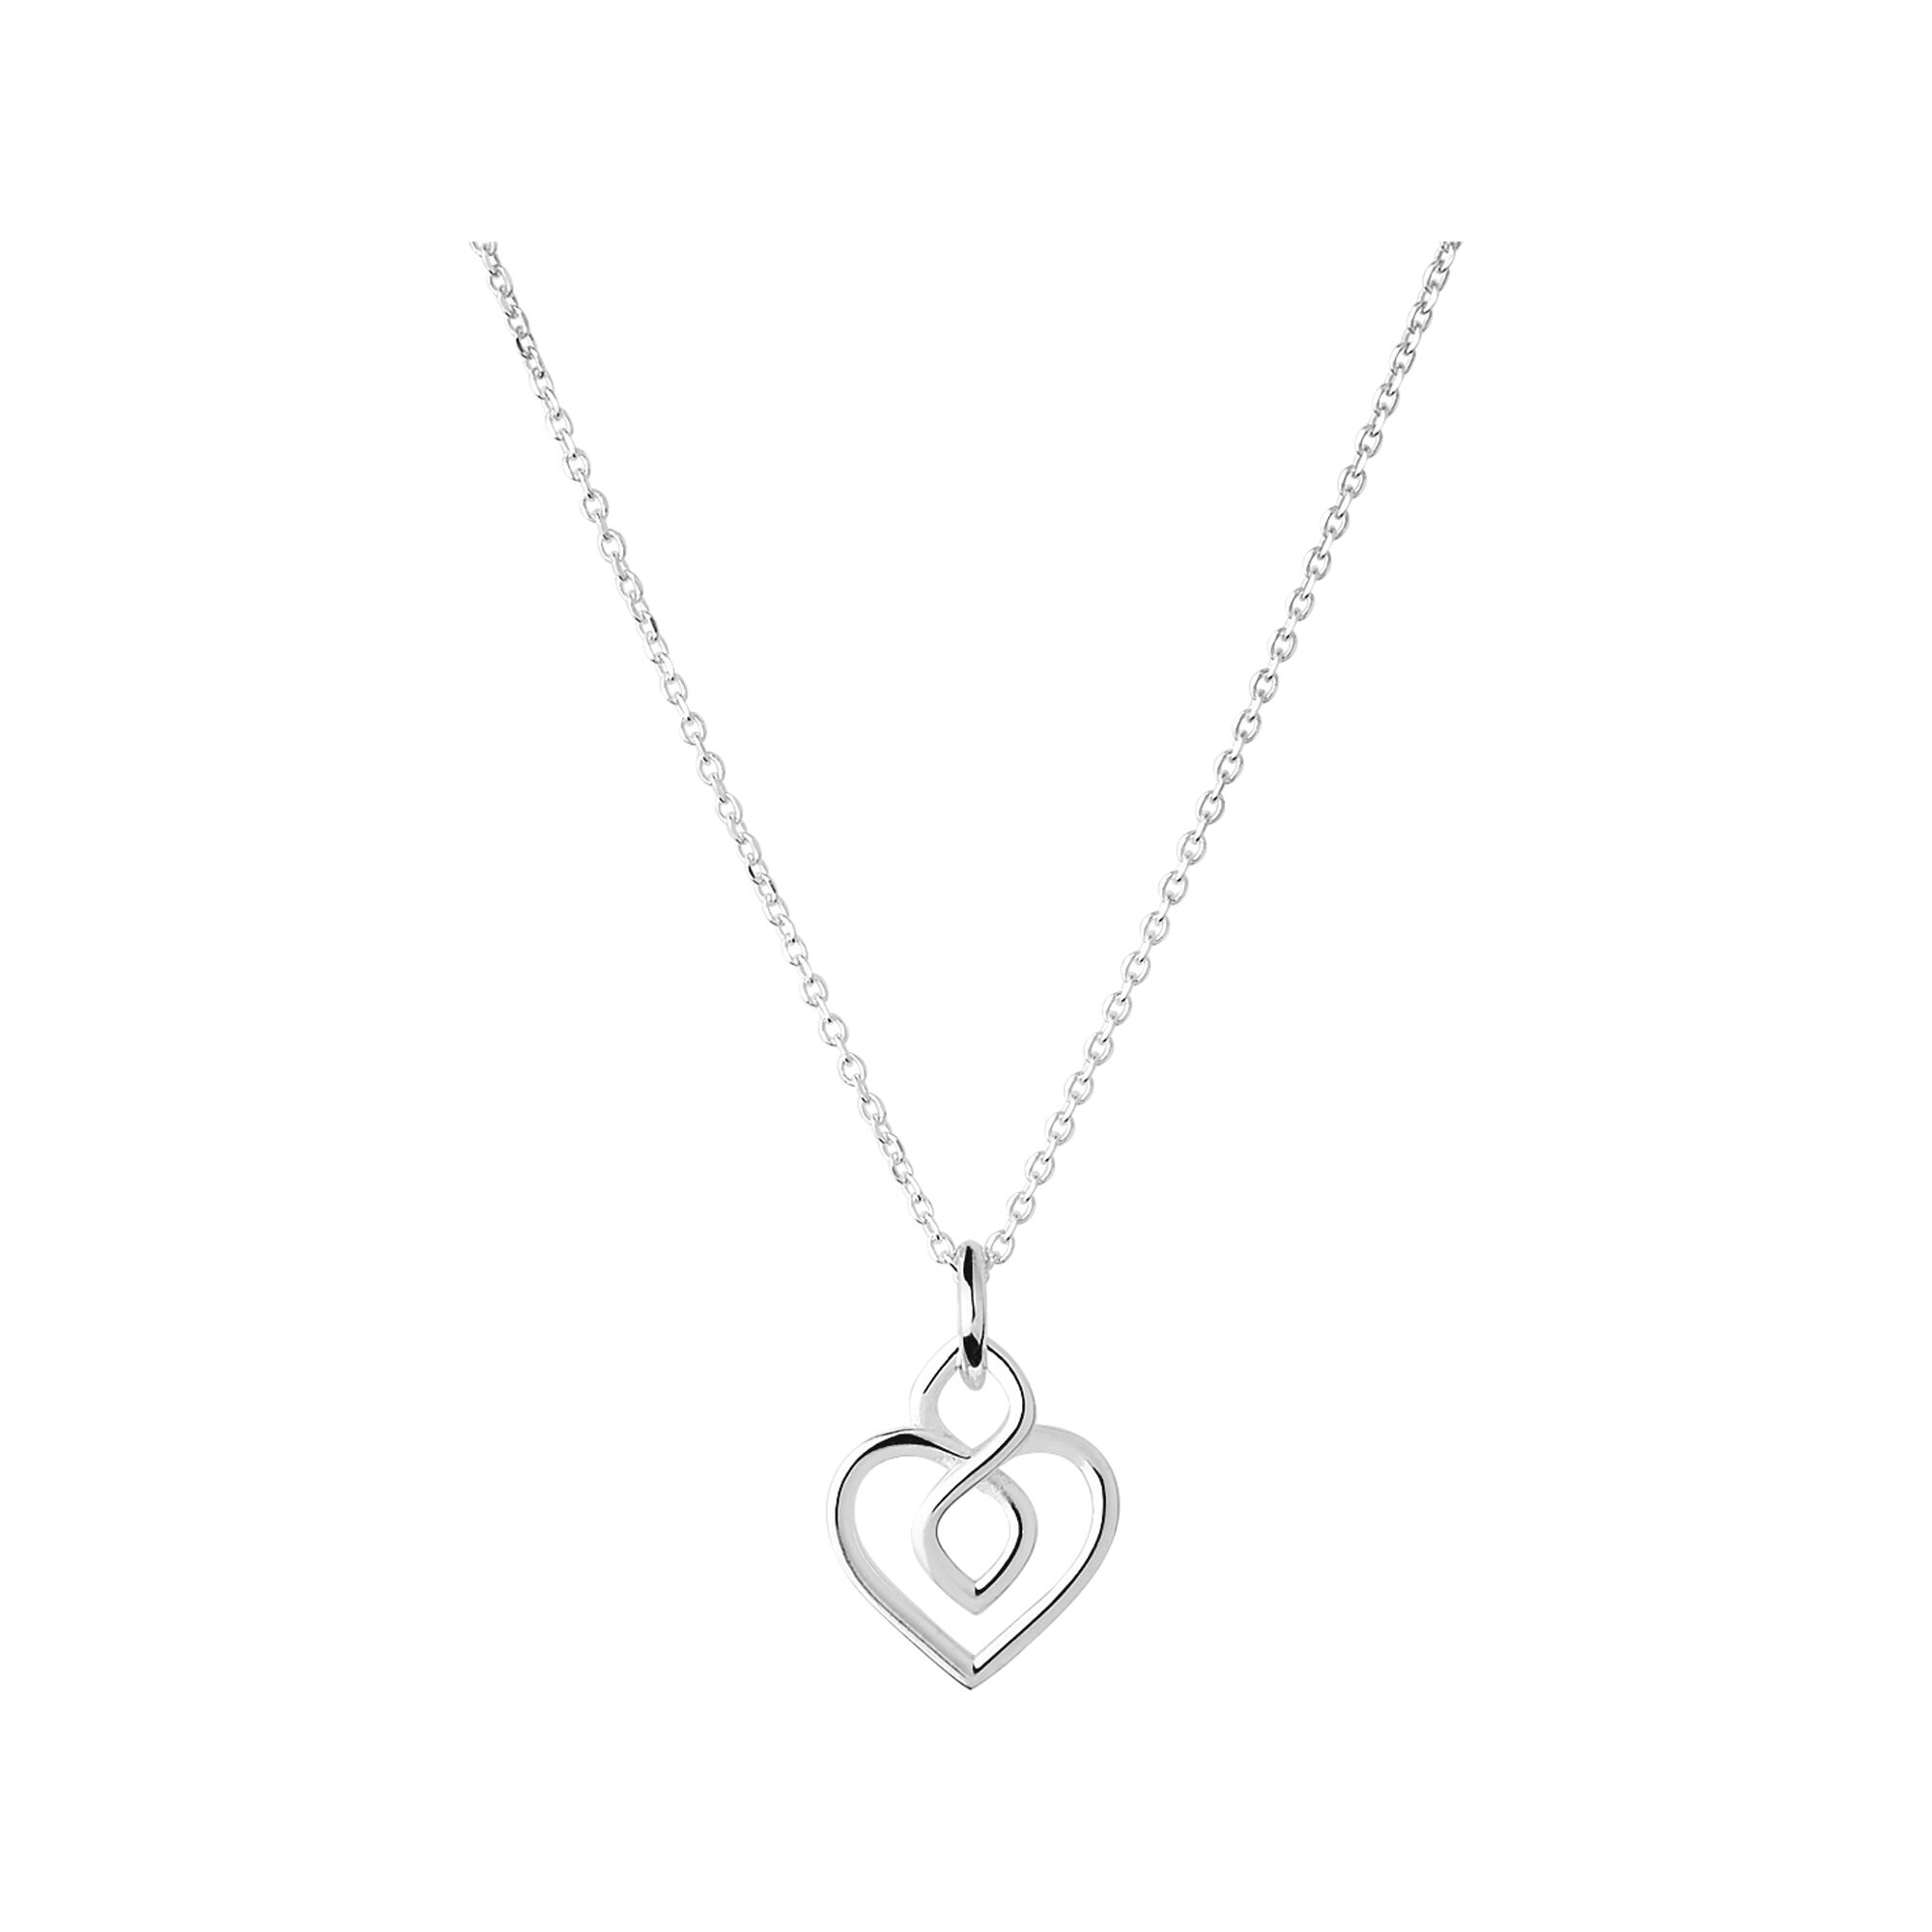 en silver infinity jared jar jaredstore expand heart to necklace zm symbol mv click sterling sign